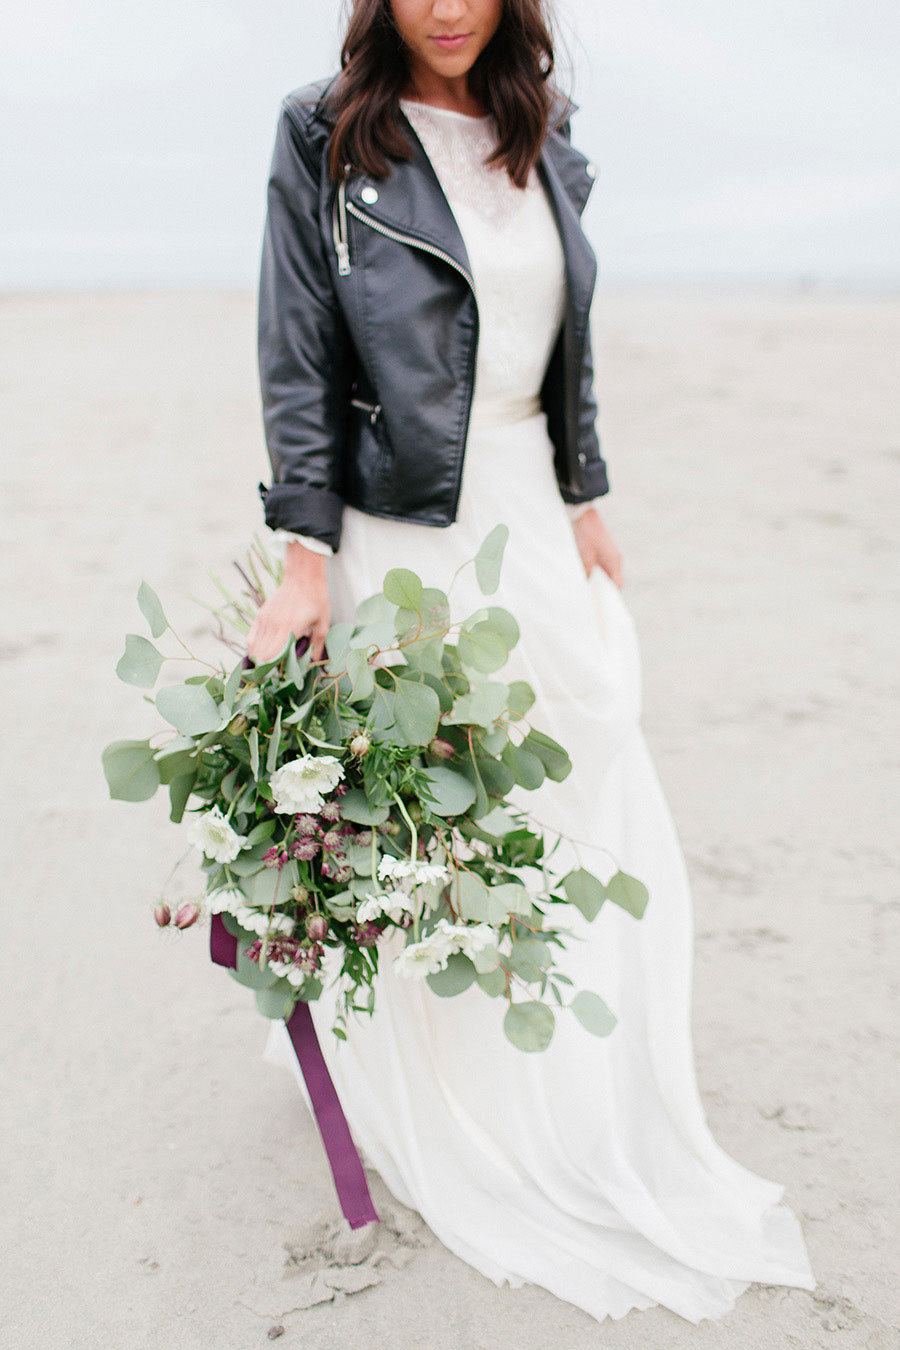 Down By The Sea! A Free-Spirited Elopement Editorial Shoot0014